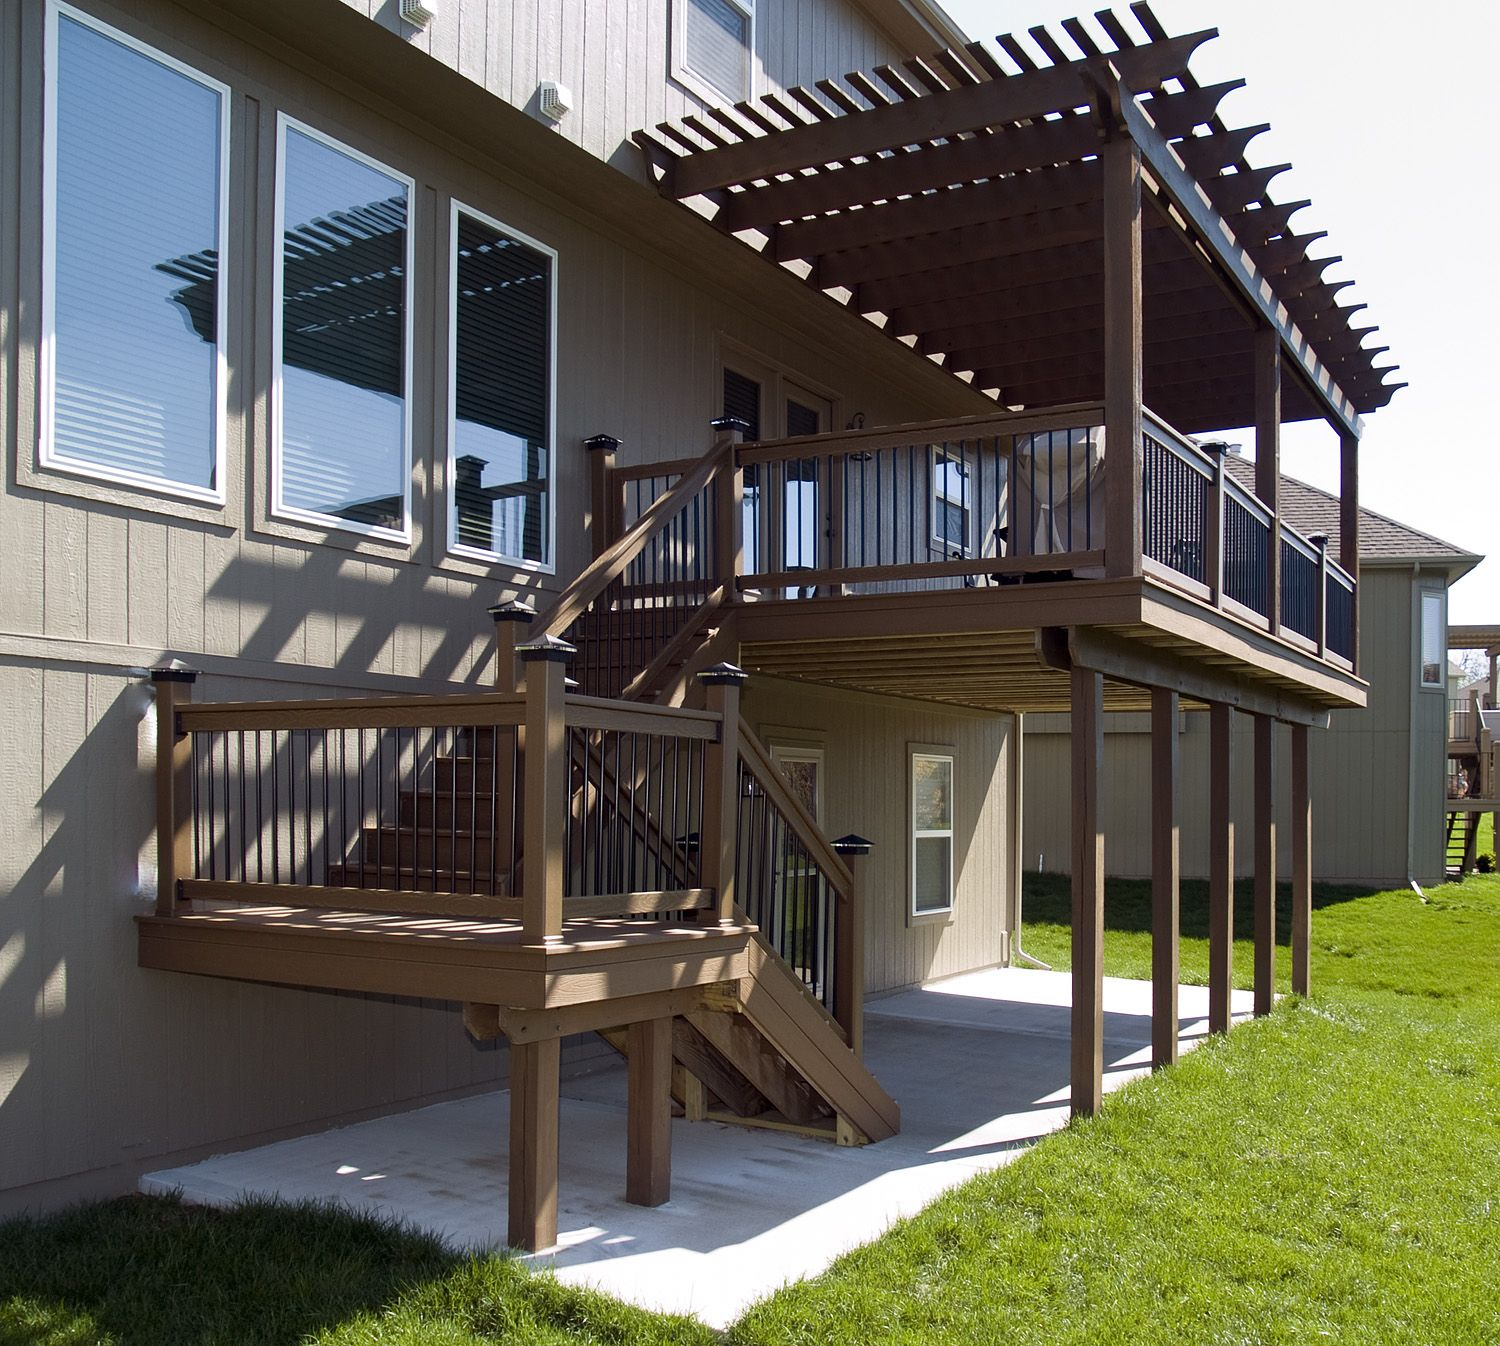 Patio And Deck Builders Utah: Covered Patio With A Pergola Over The Deck Above